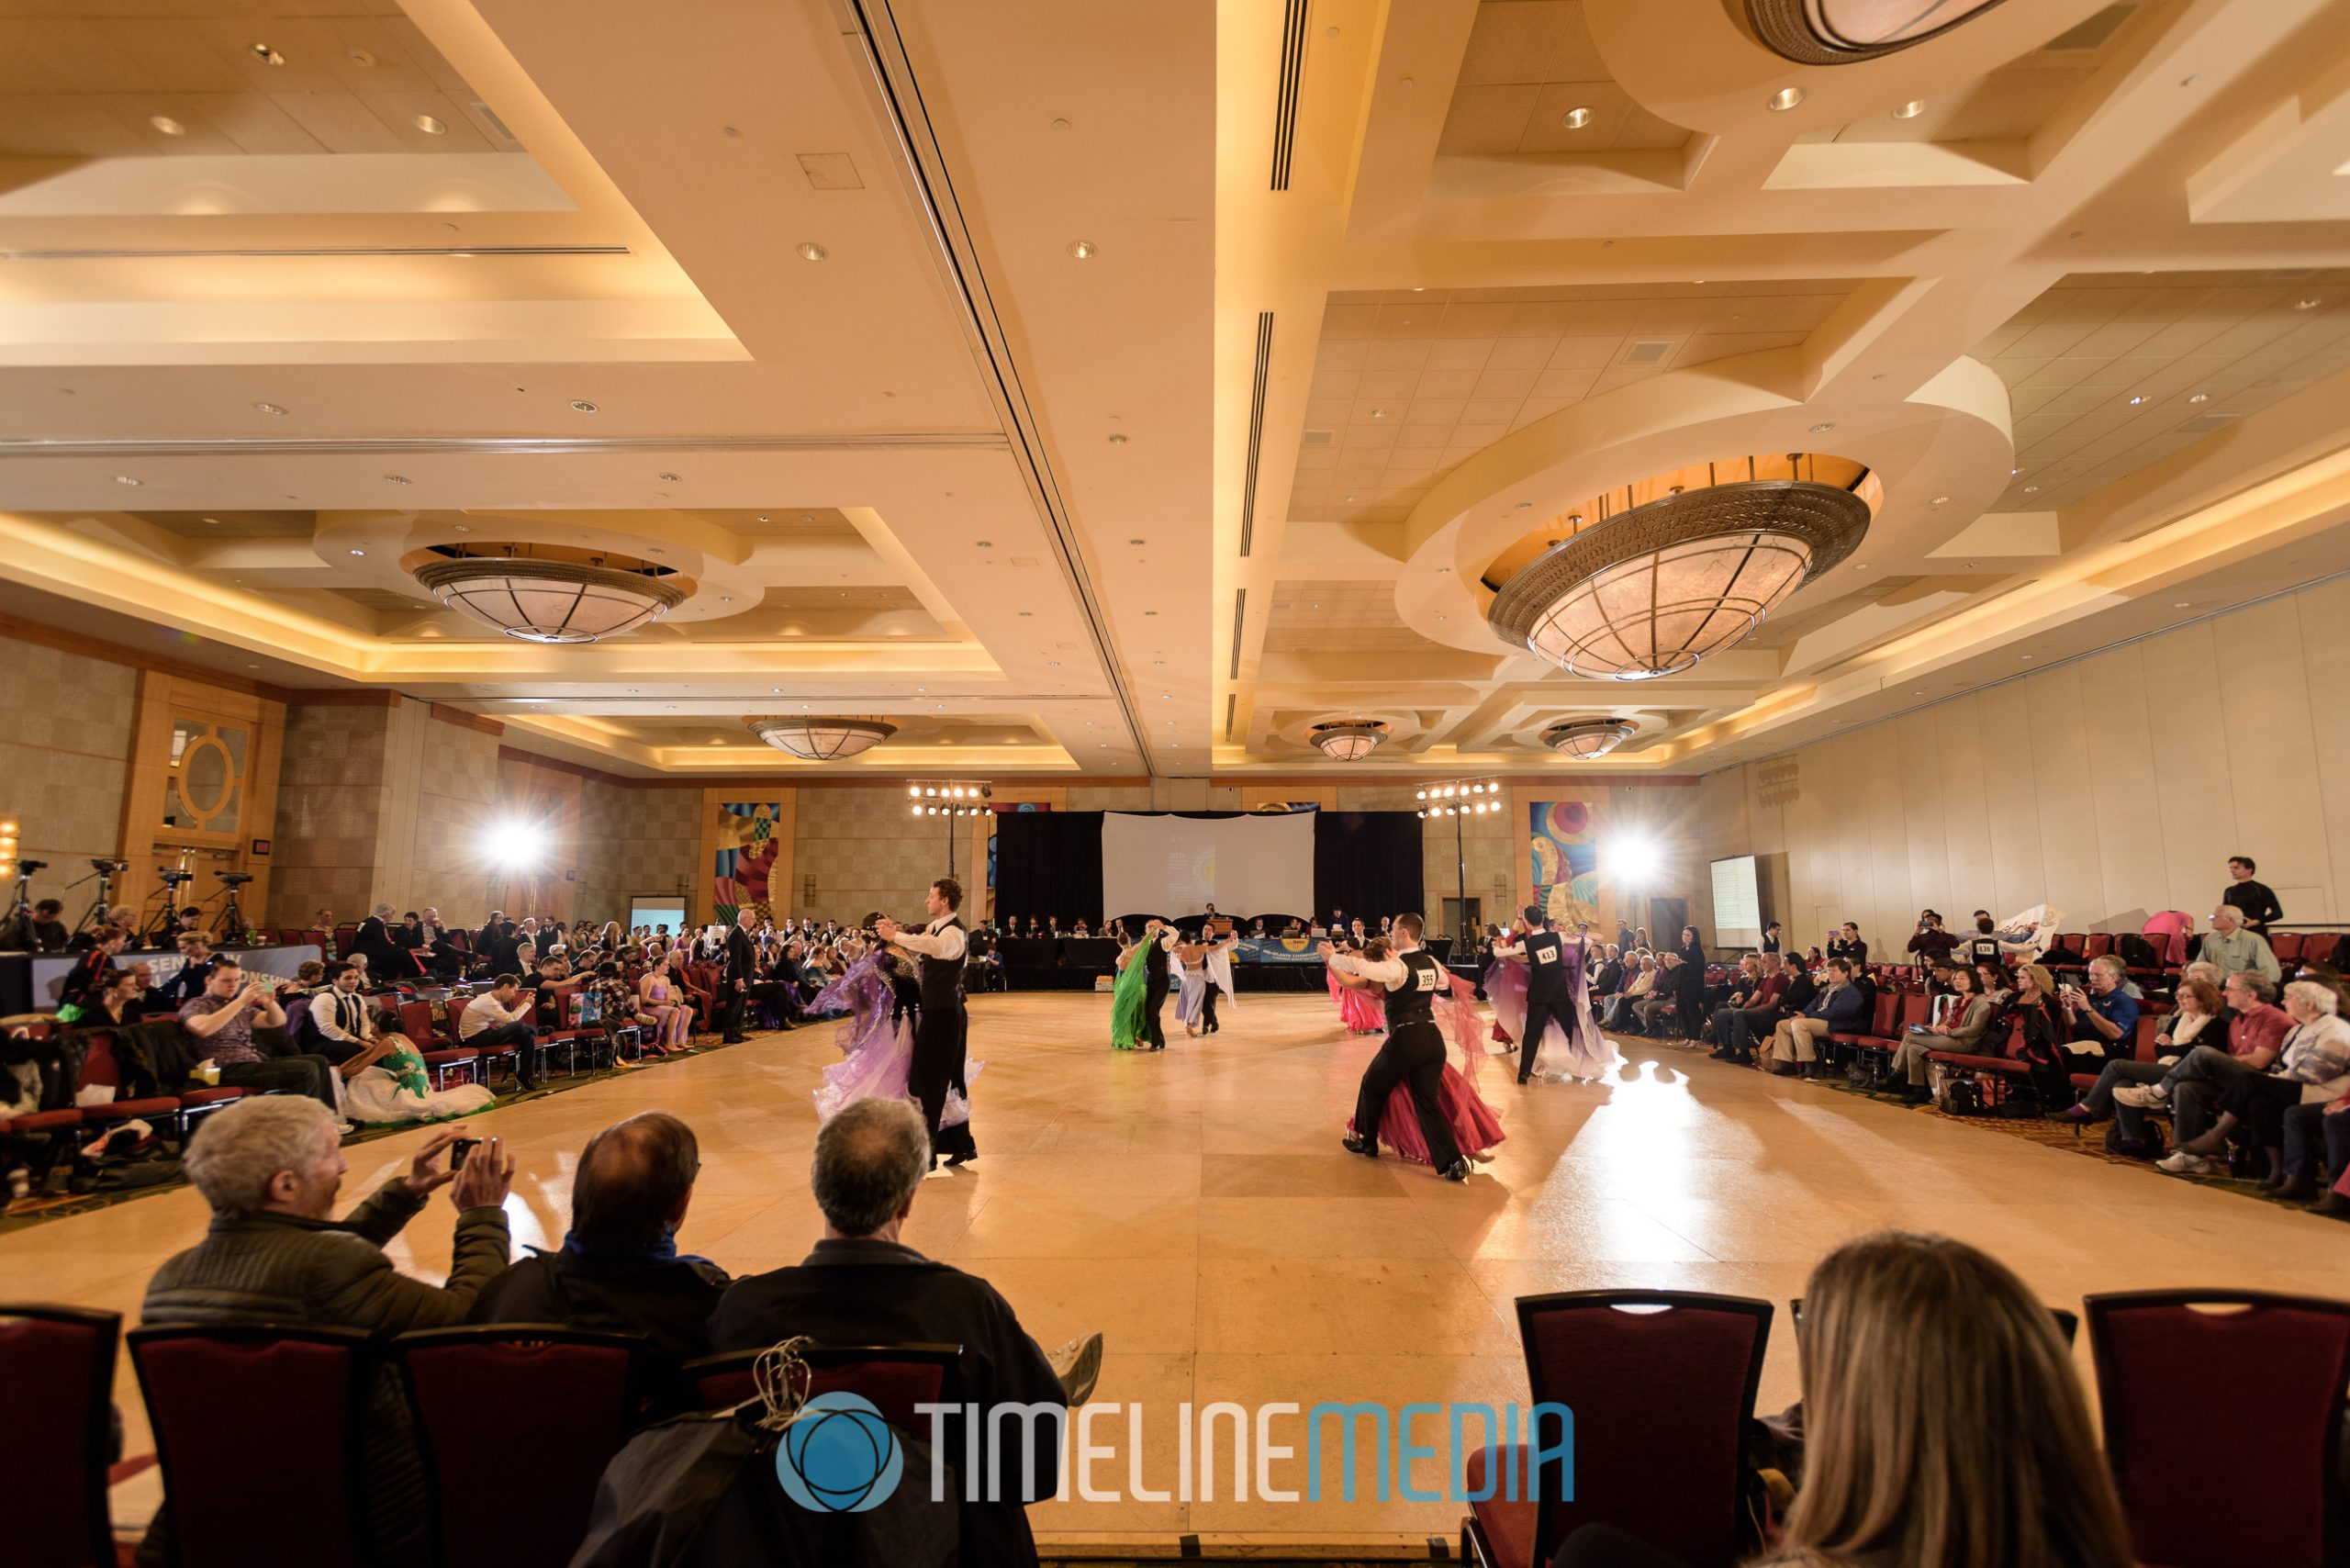 Mid-Atlantic Championships competition floor ©TimeLine Media